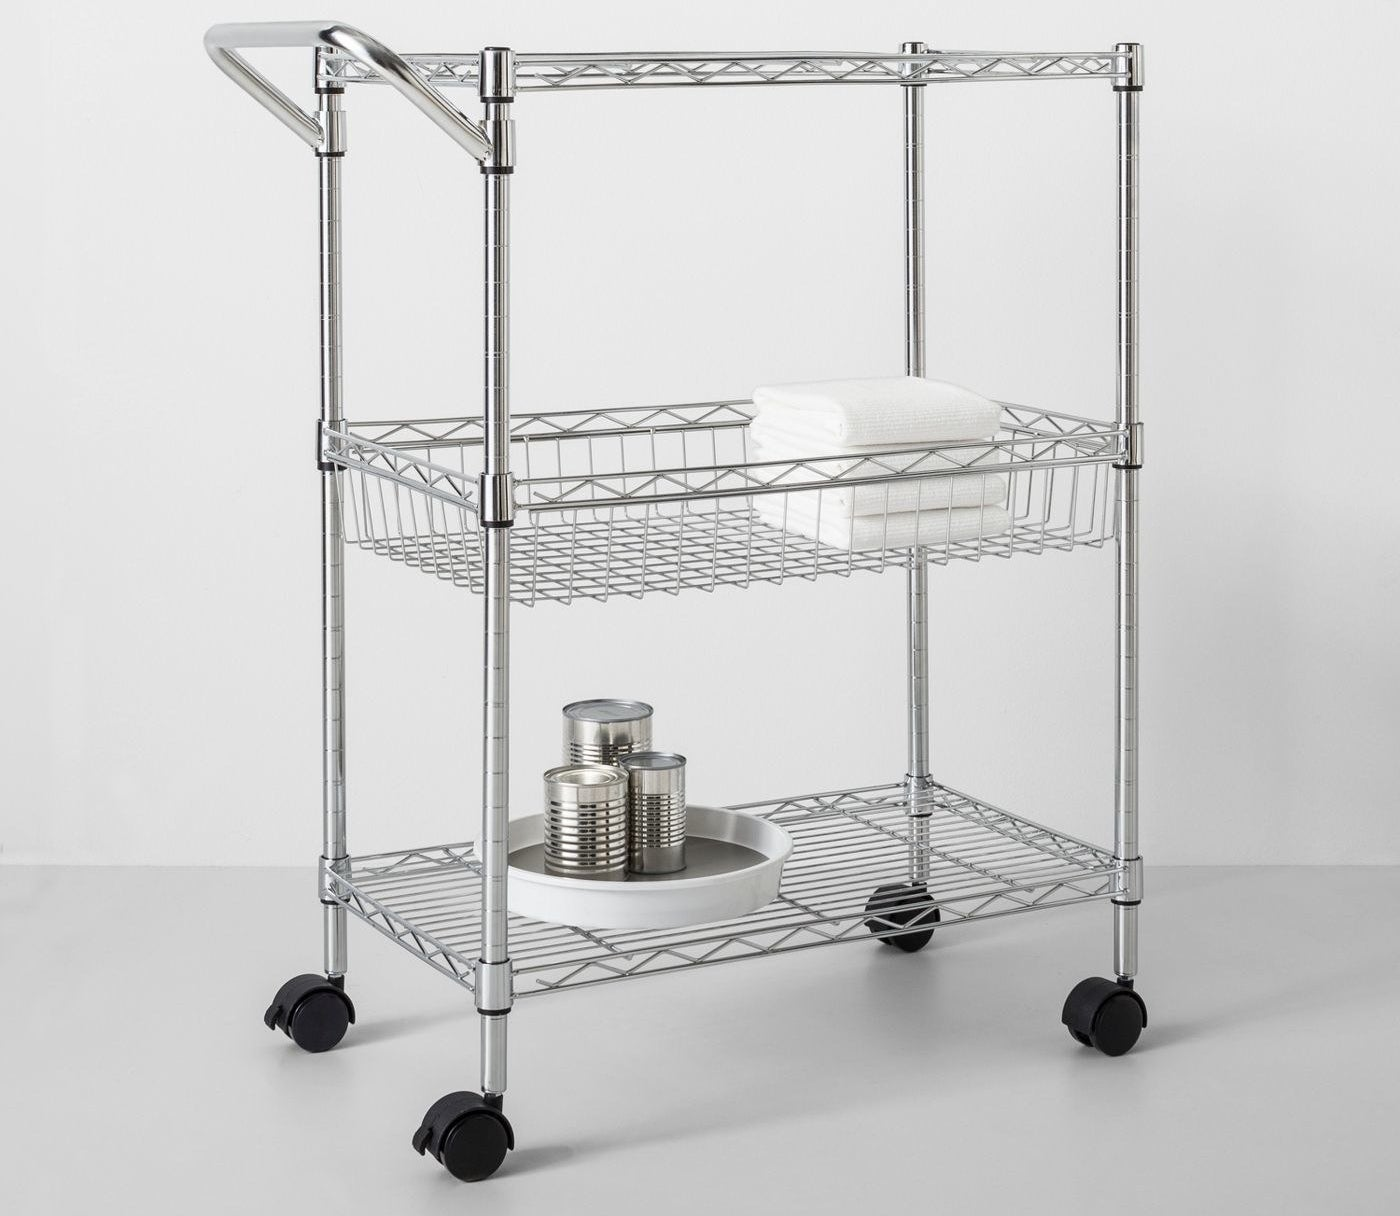 Stainless steel cart with handle and three shelves